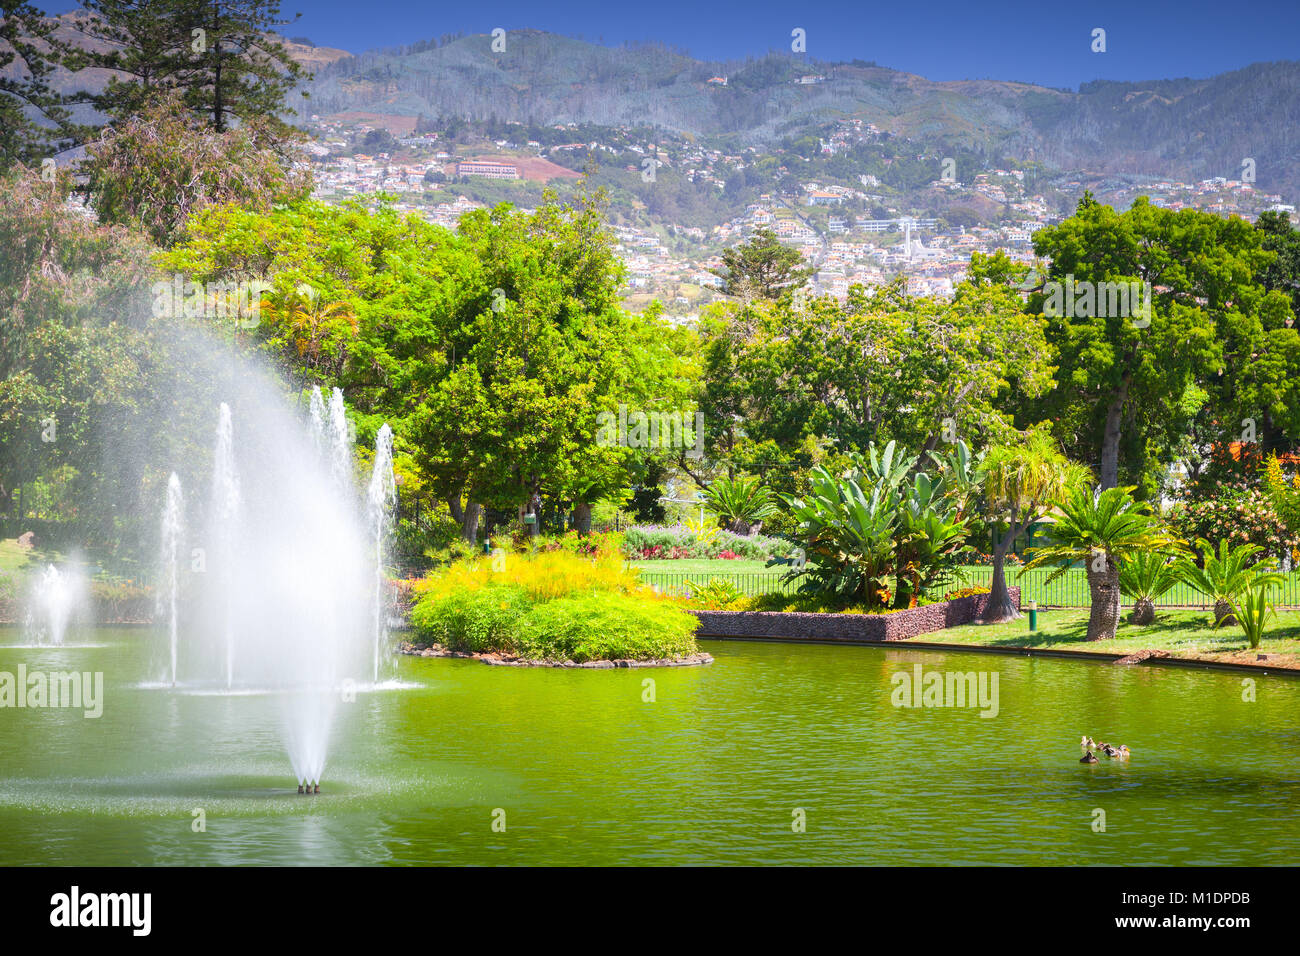 Fountains in Santa Catarina Park, this is one of the largest parks of Funchal, Madeira island, Portugal - Stock Image